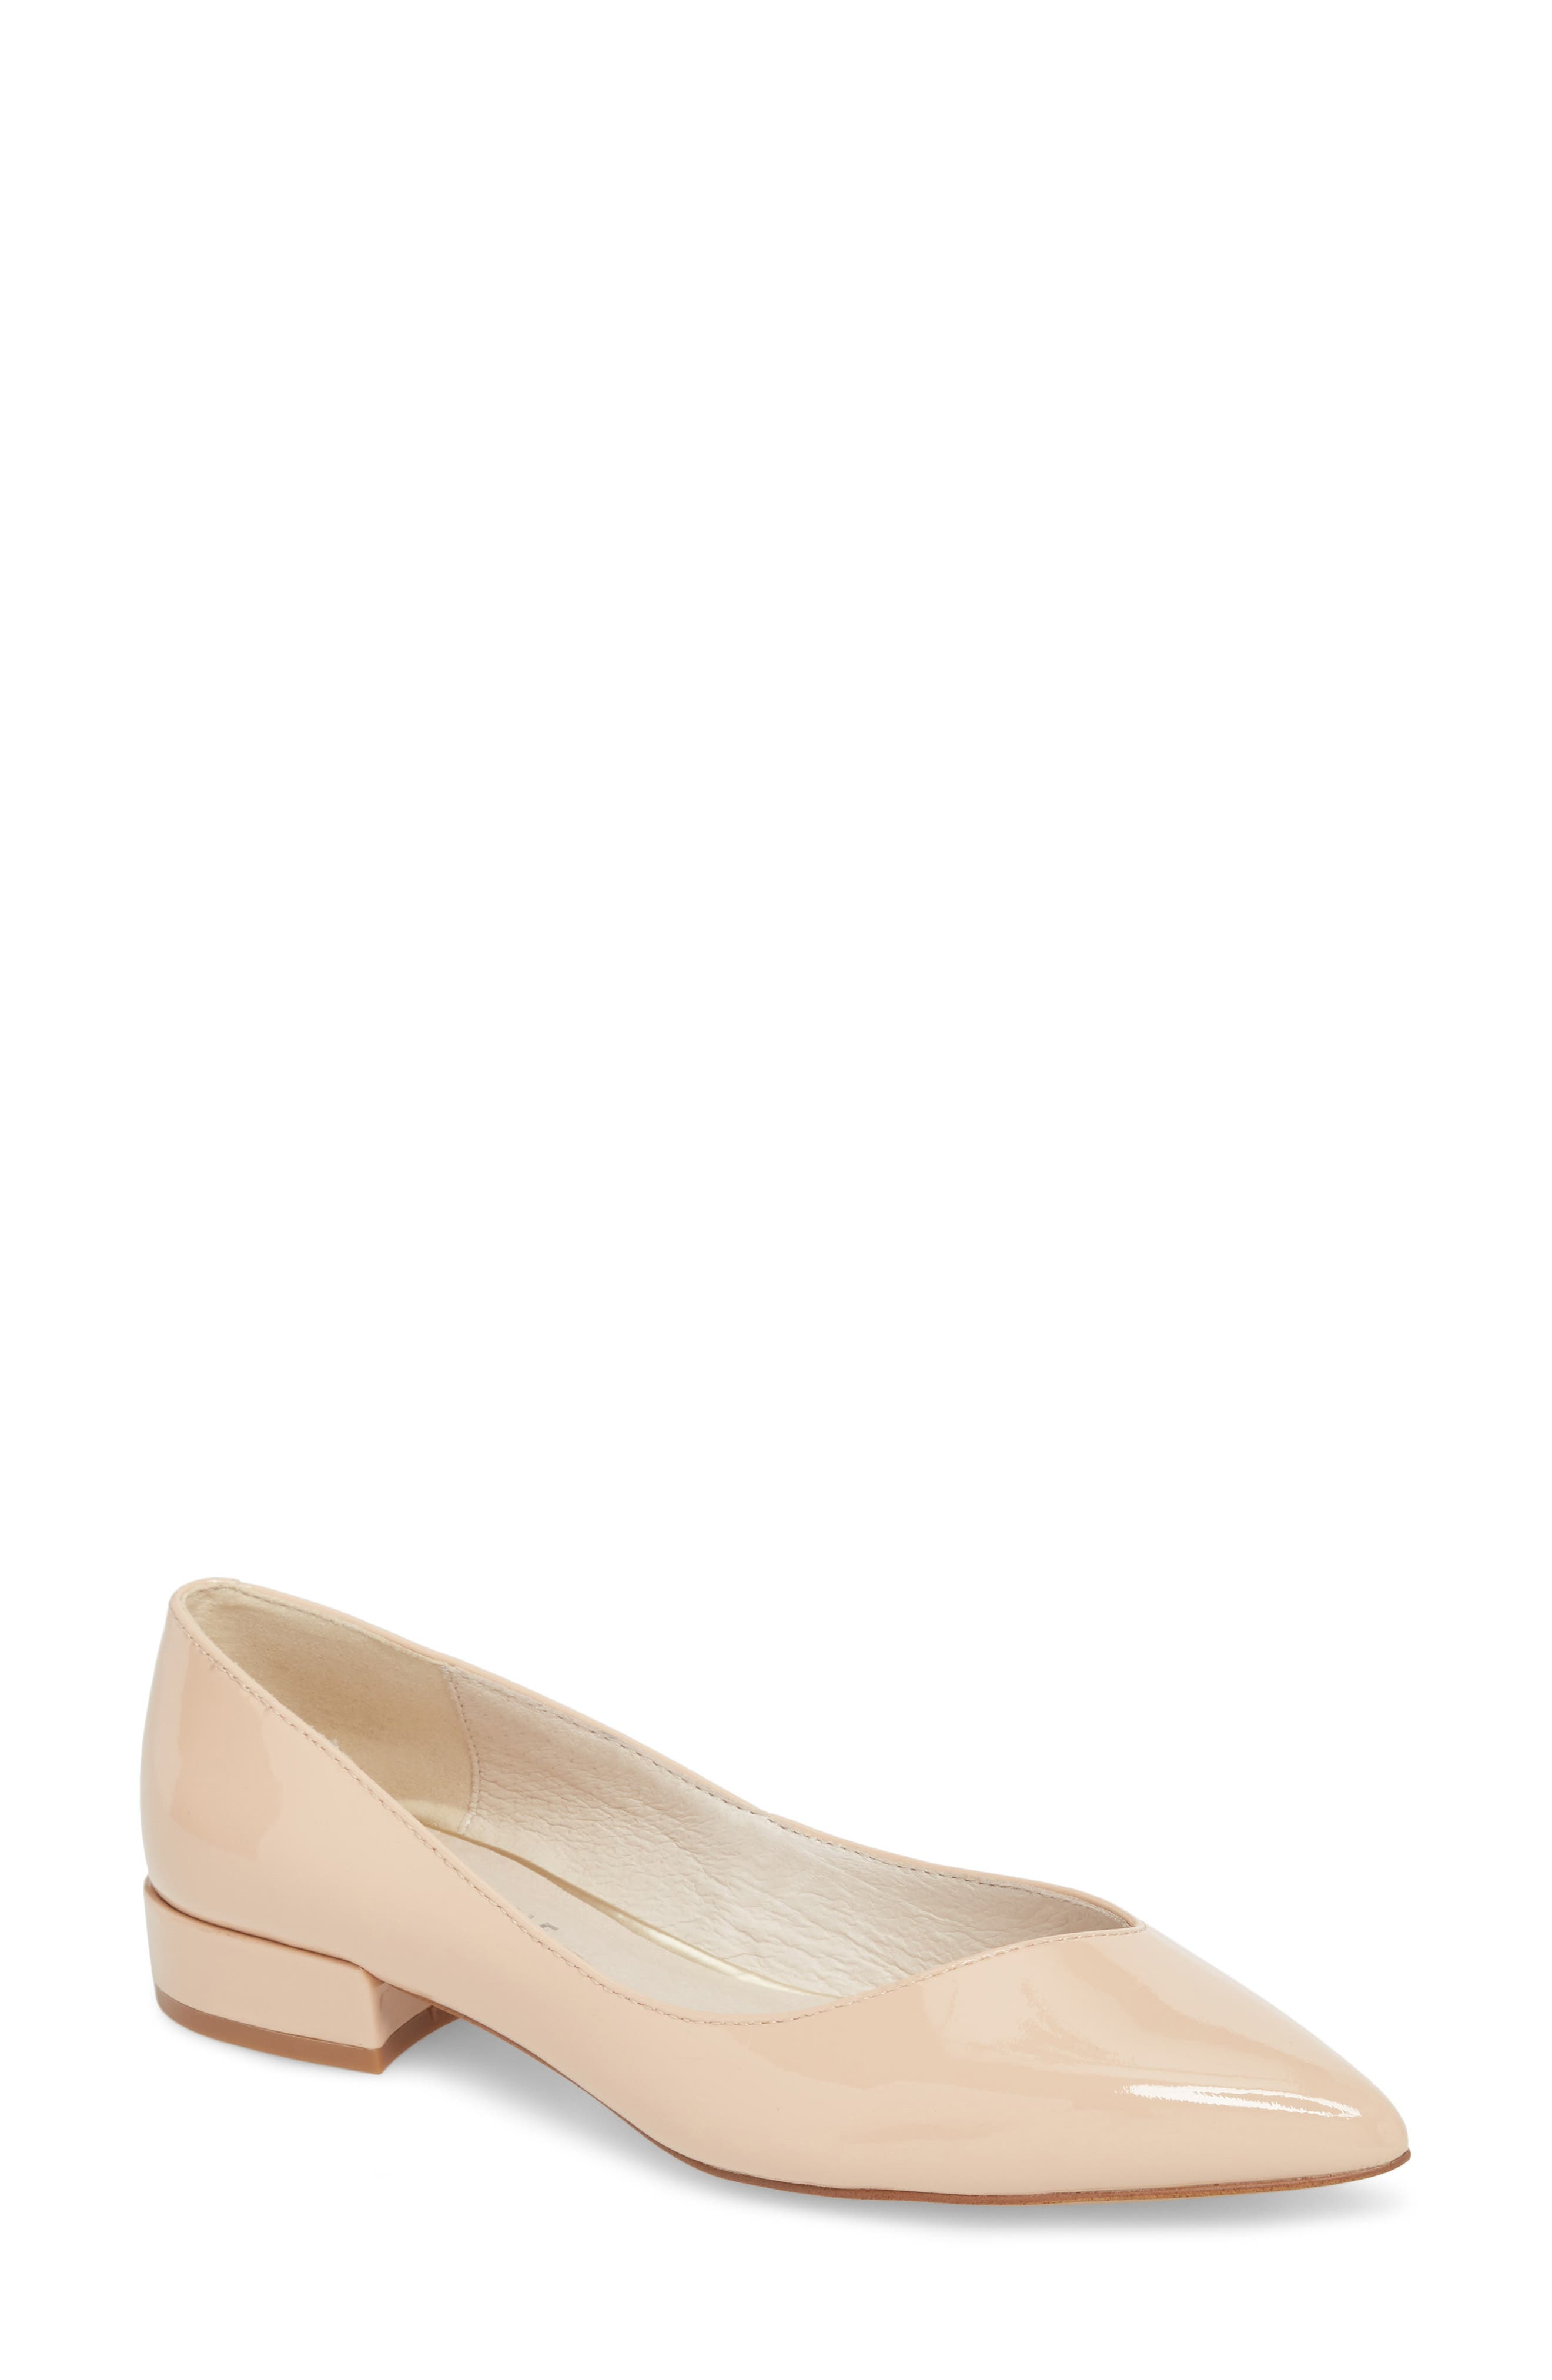 Ames Pointy Toe Flat,                         Main,                         color, 294